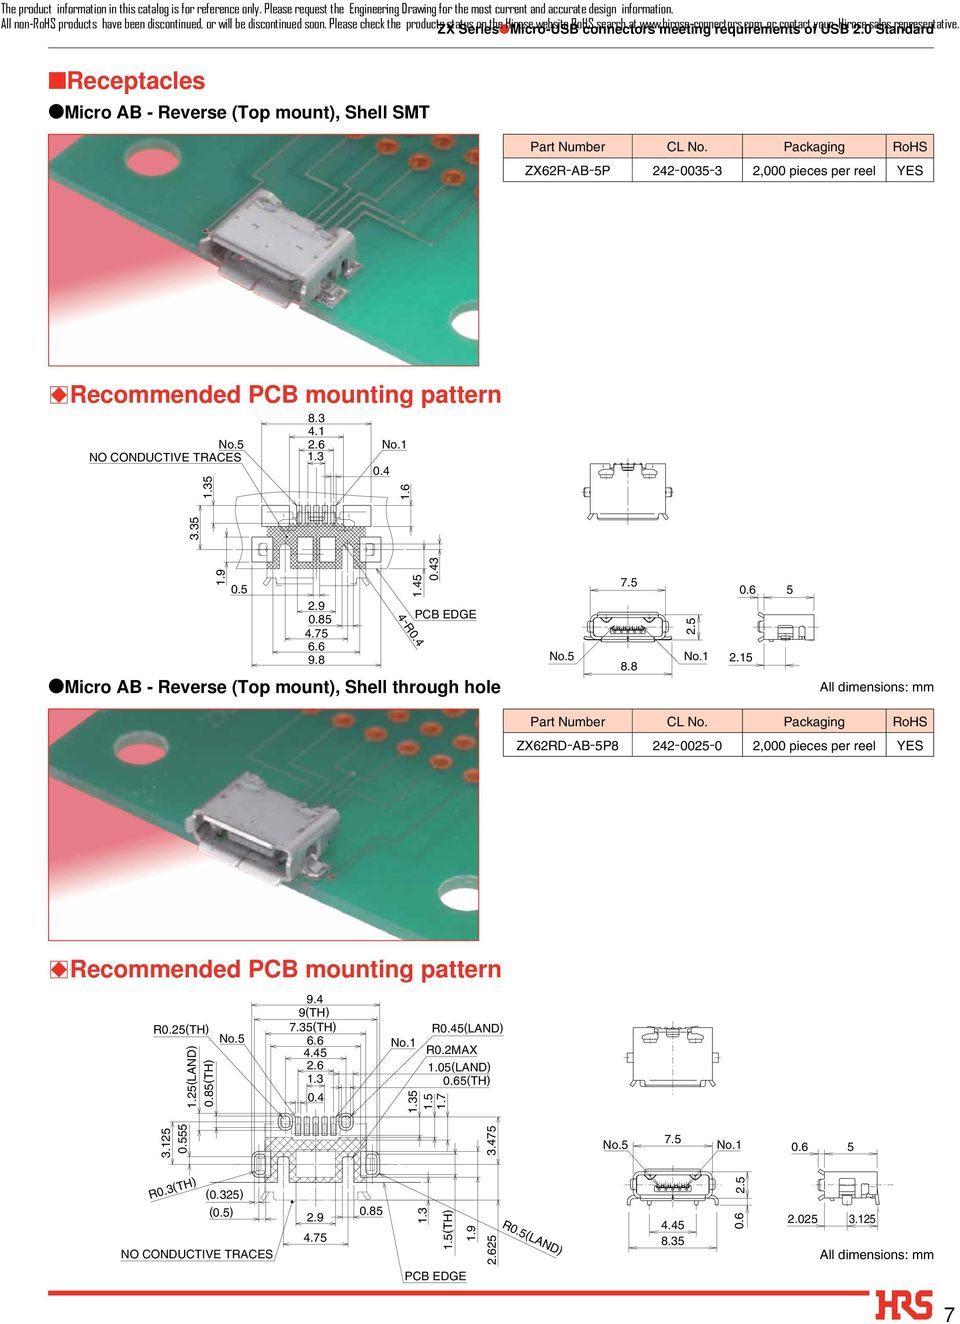 Receptacles Micro AB - Reverse (Top mount), Shell SMT ZX62R-AB-5P 242-0035-3 2,000 pieces per reel YES BRecommended PCB mounting pattern NO CONDUCTIVE TRACES 5.3 4.1 0.4 1.6 1.9 3.35 0.5 2.9 0.5 4.